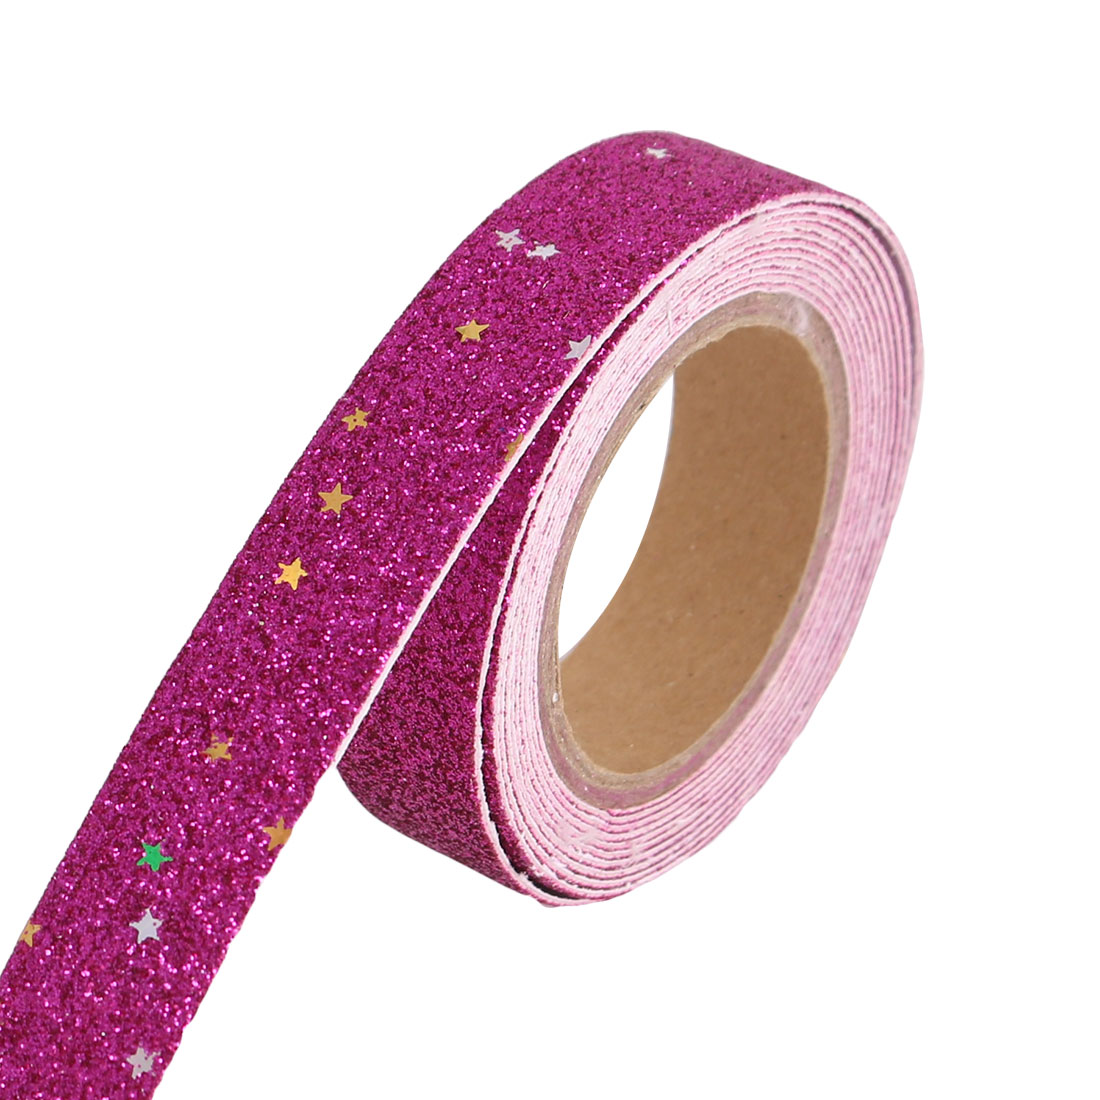 Glitter Self Adhesive Decorative DIY Crafting Sticky Paper Tape Sticker Fuchsia